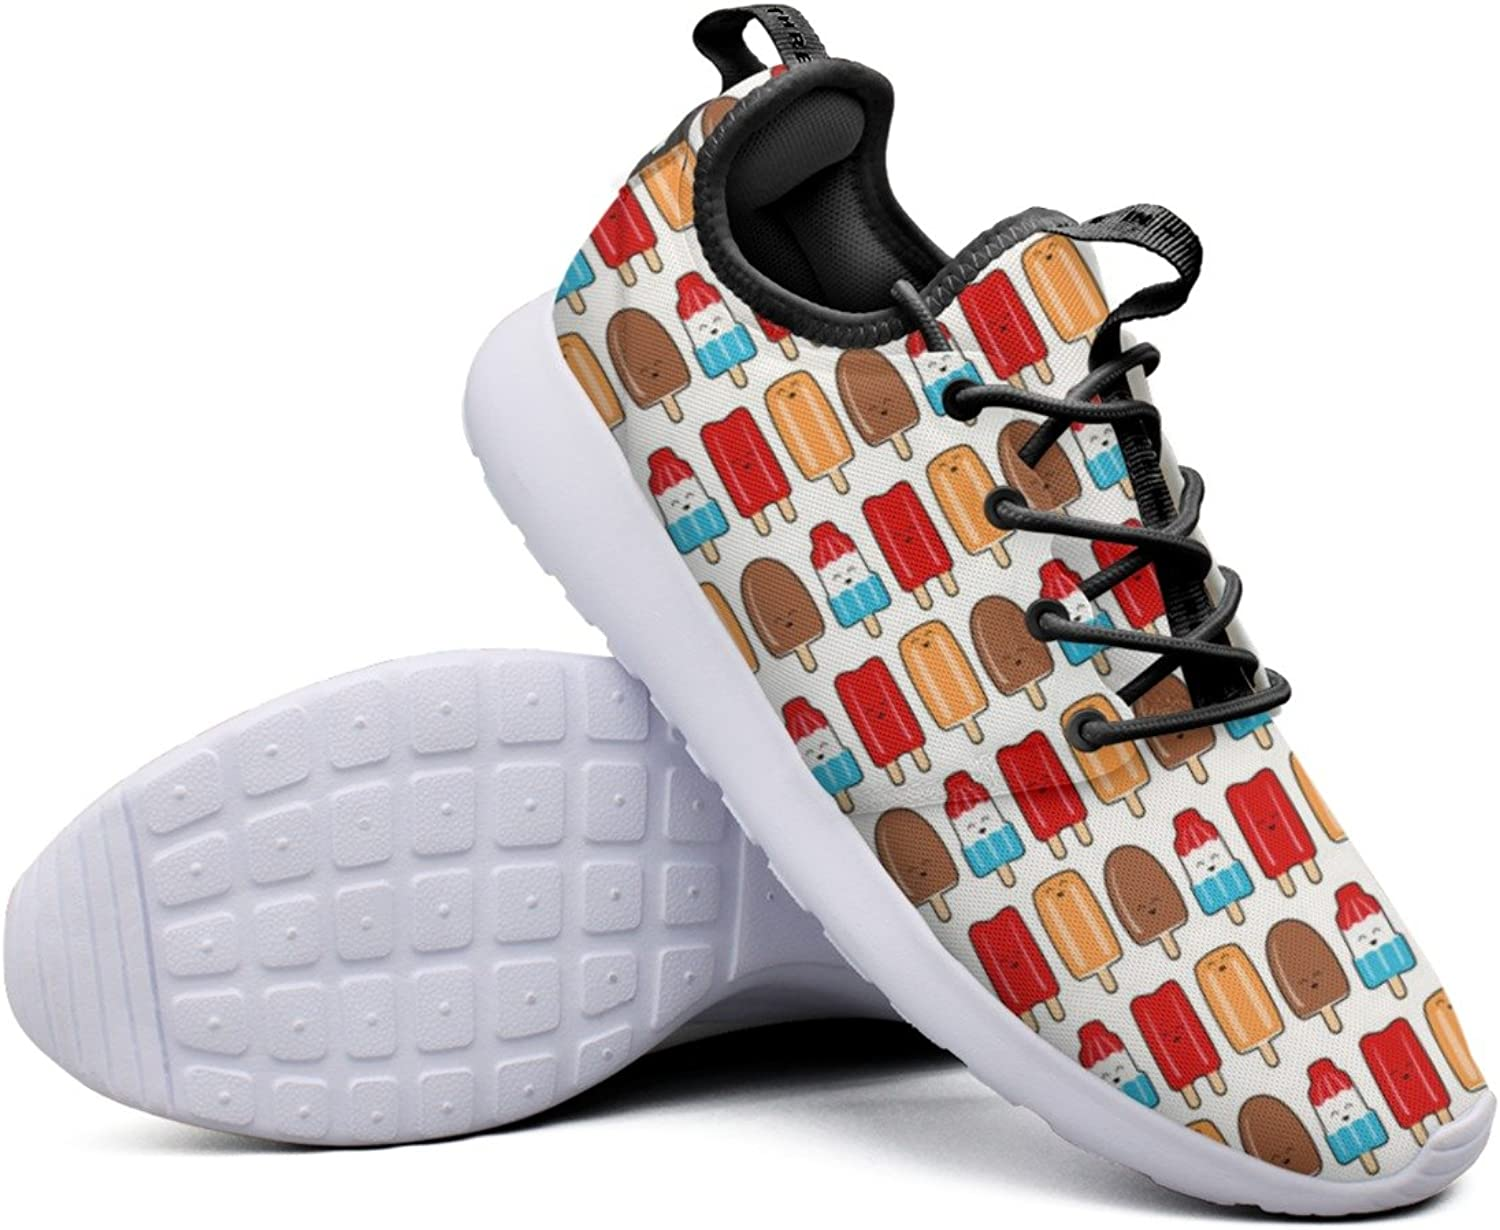 Fashion Sneakers shoes For Women Summer Ice Cream Happy Ice Pops Designer Lightweight Breathable Mesh Womens Sneakers shoes